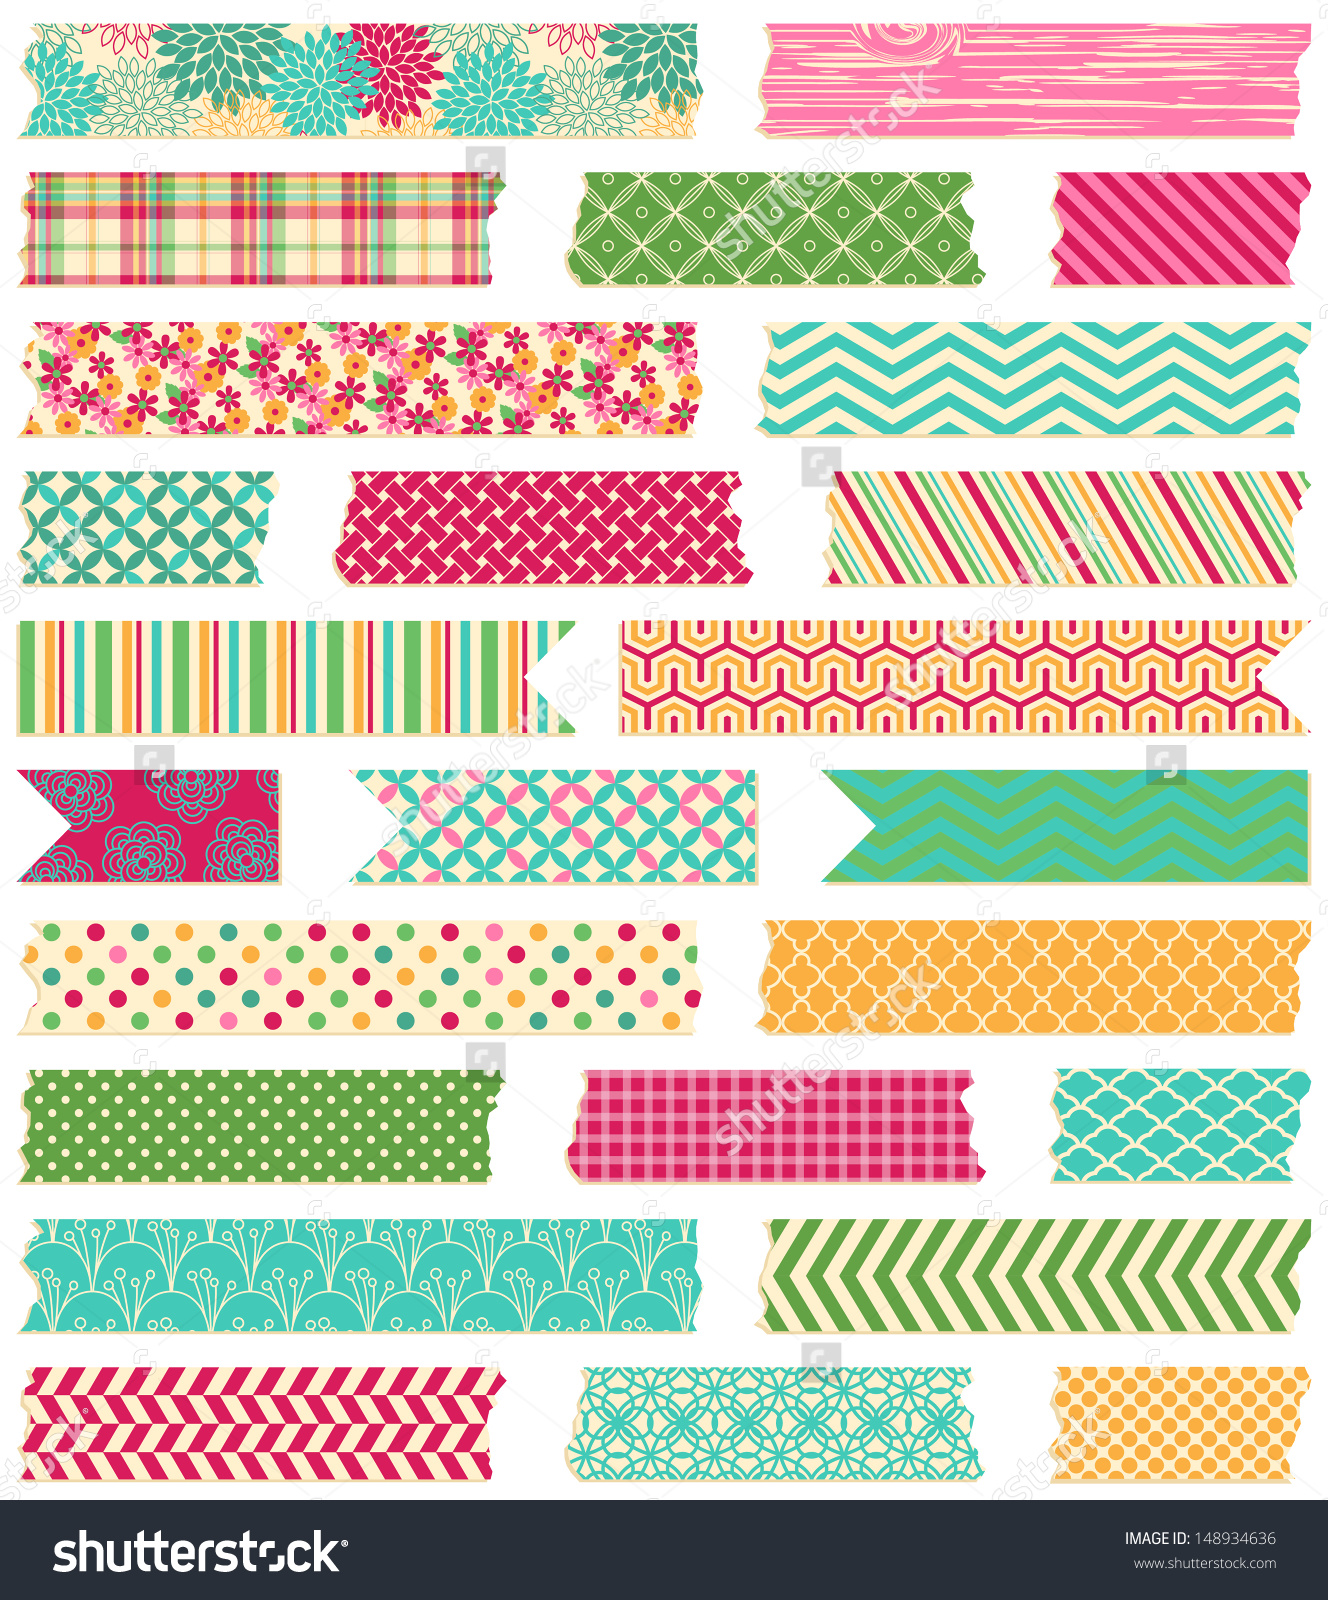 Vector Collection Cute Patterned Washi Tape Stock Vector 148934636.